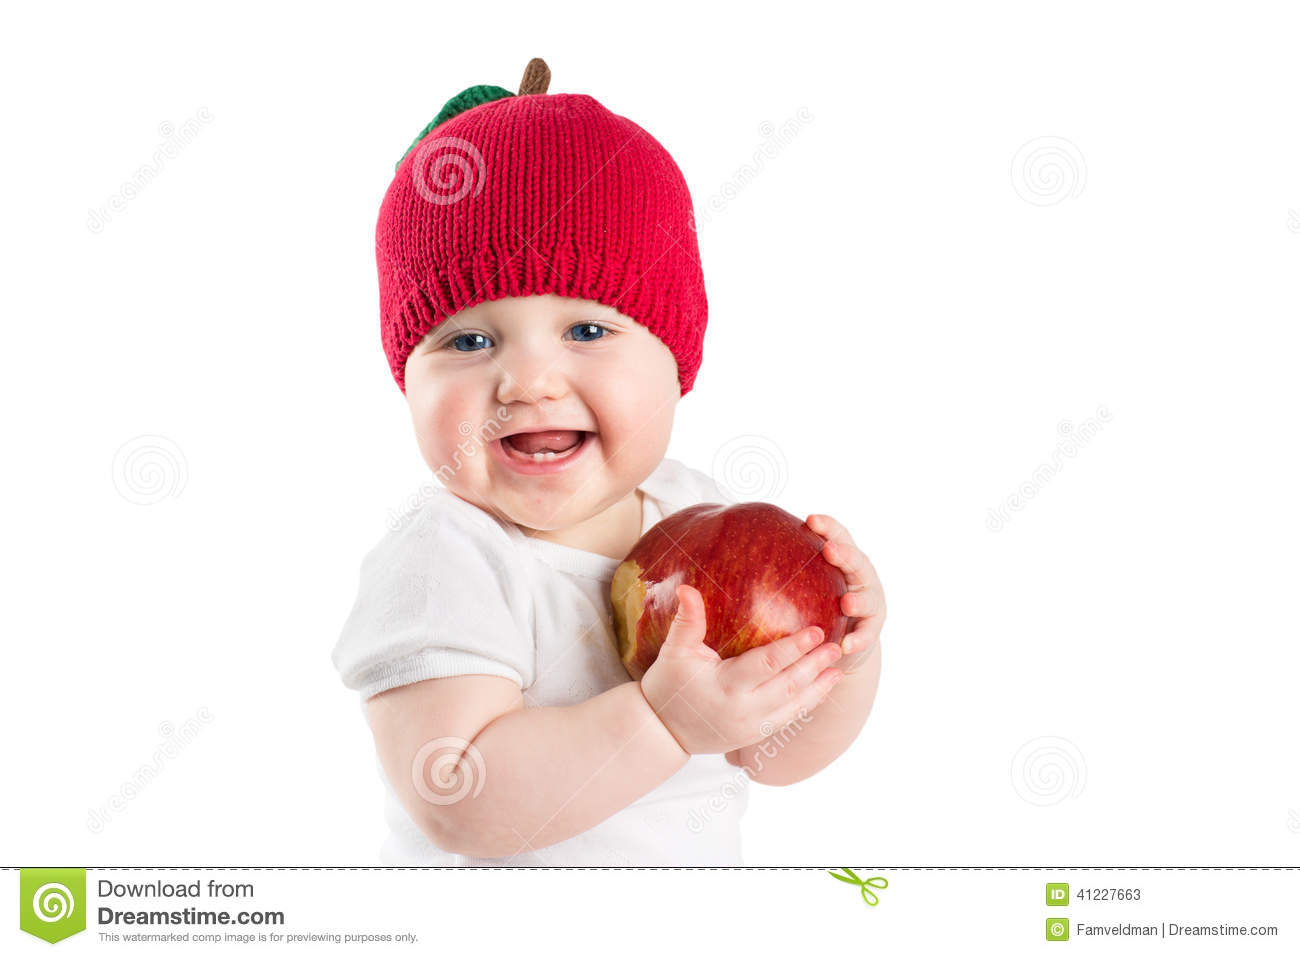 Cute baby in a knitted apple hat biting in a red ripe apple, isolated on white